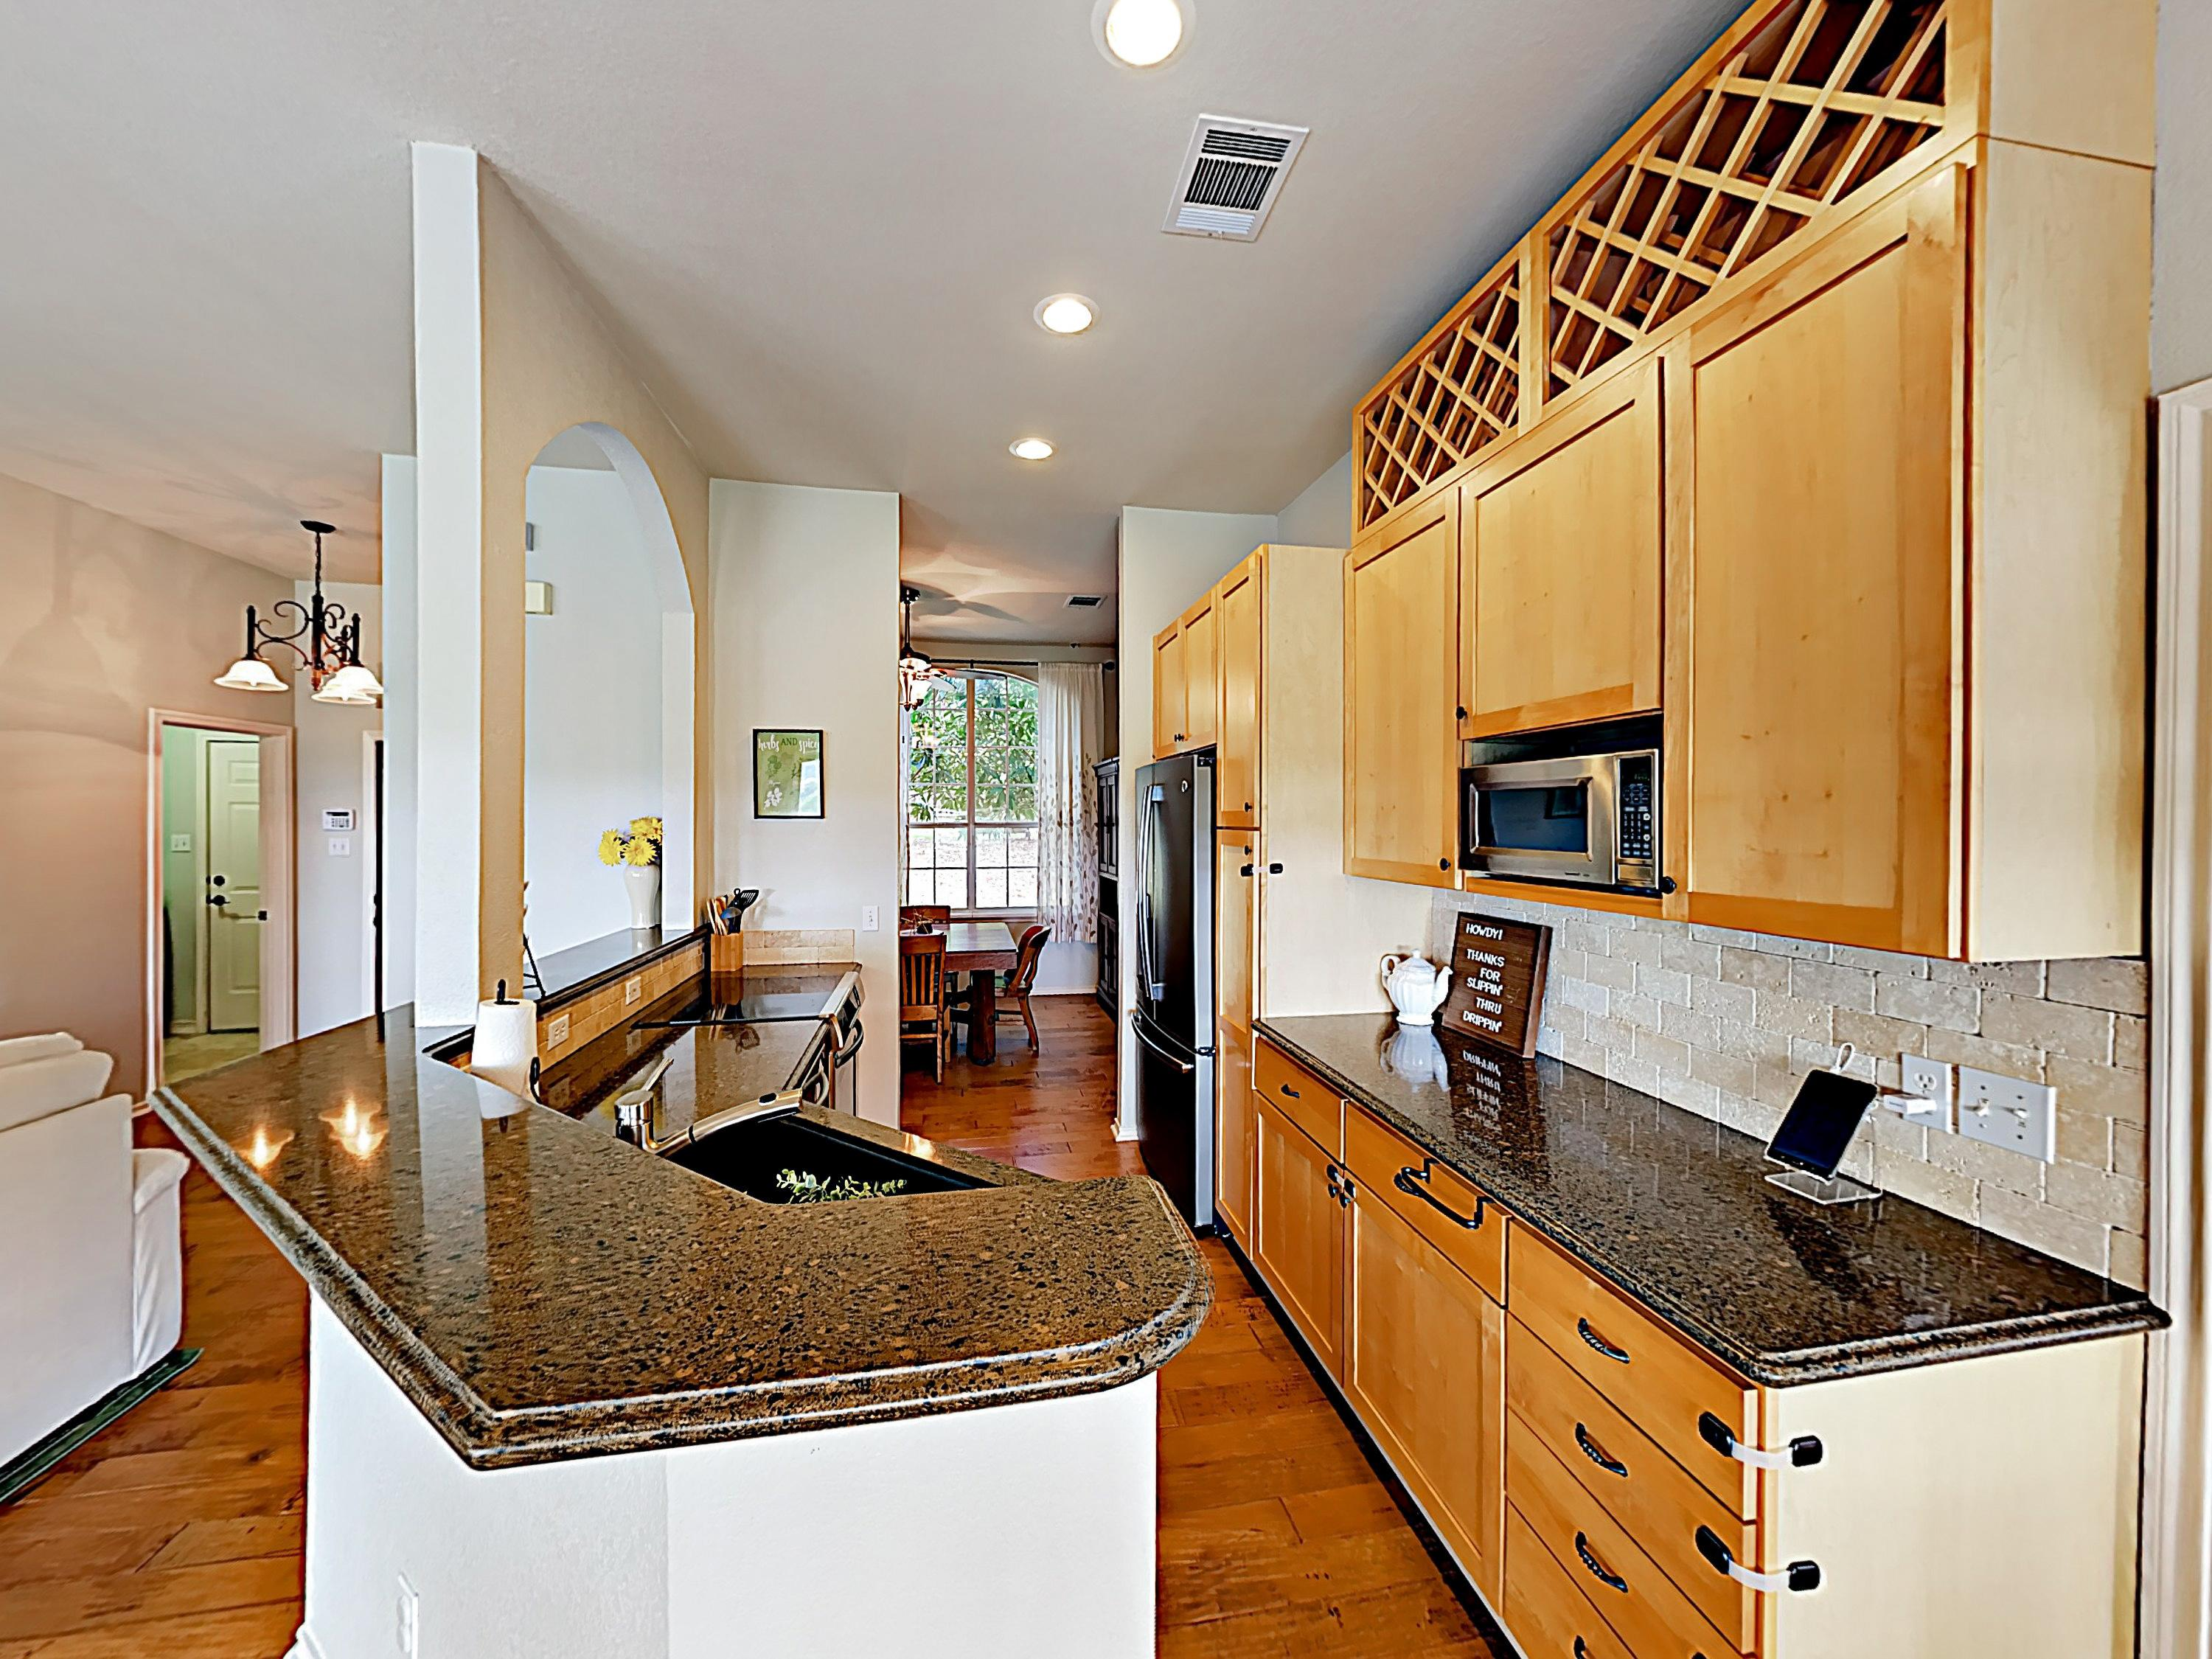 Whip up dinner in the gourmet kitchen, outfitted with sparkling marble countertops and stainless steel appliances.